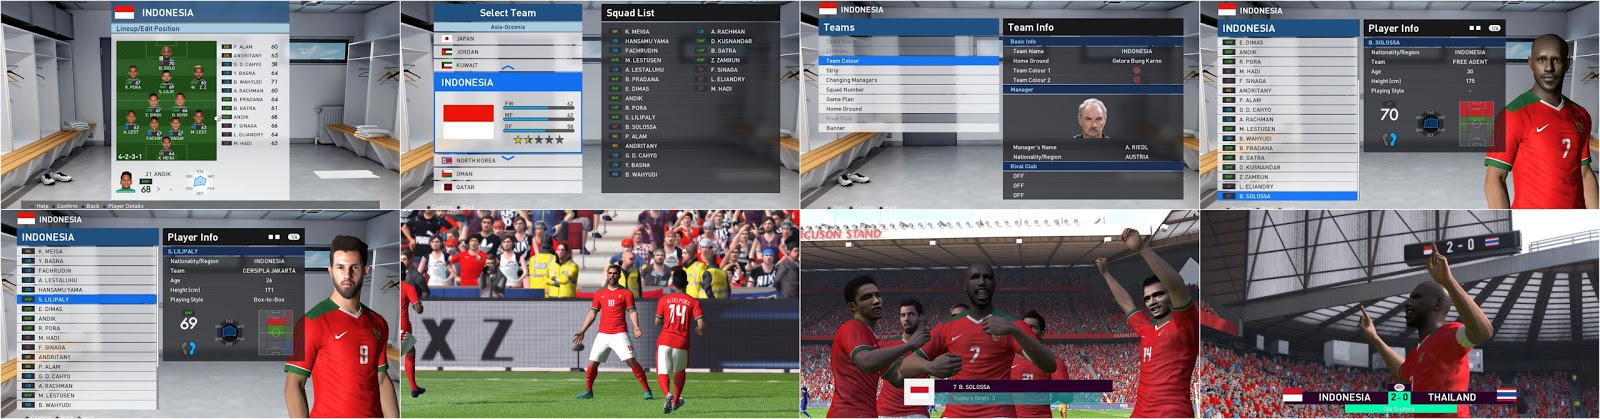 PES 2017 Indonesia Addon v1.0 For PTE Patch 3.1 by Aldivio